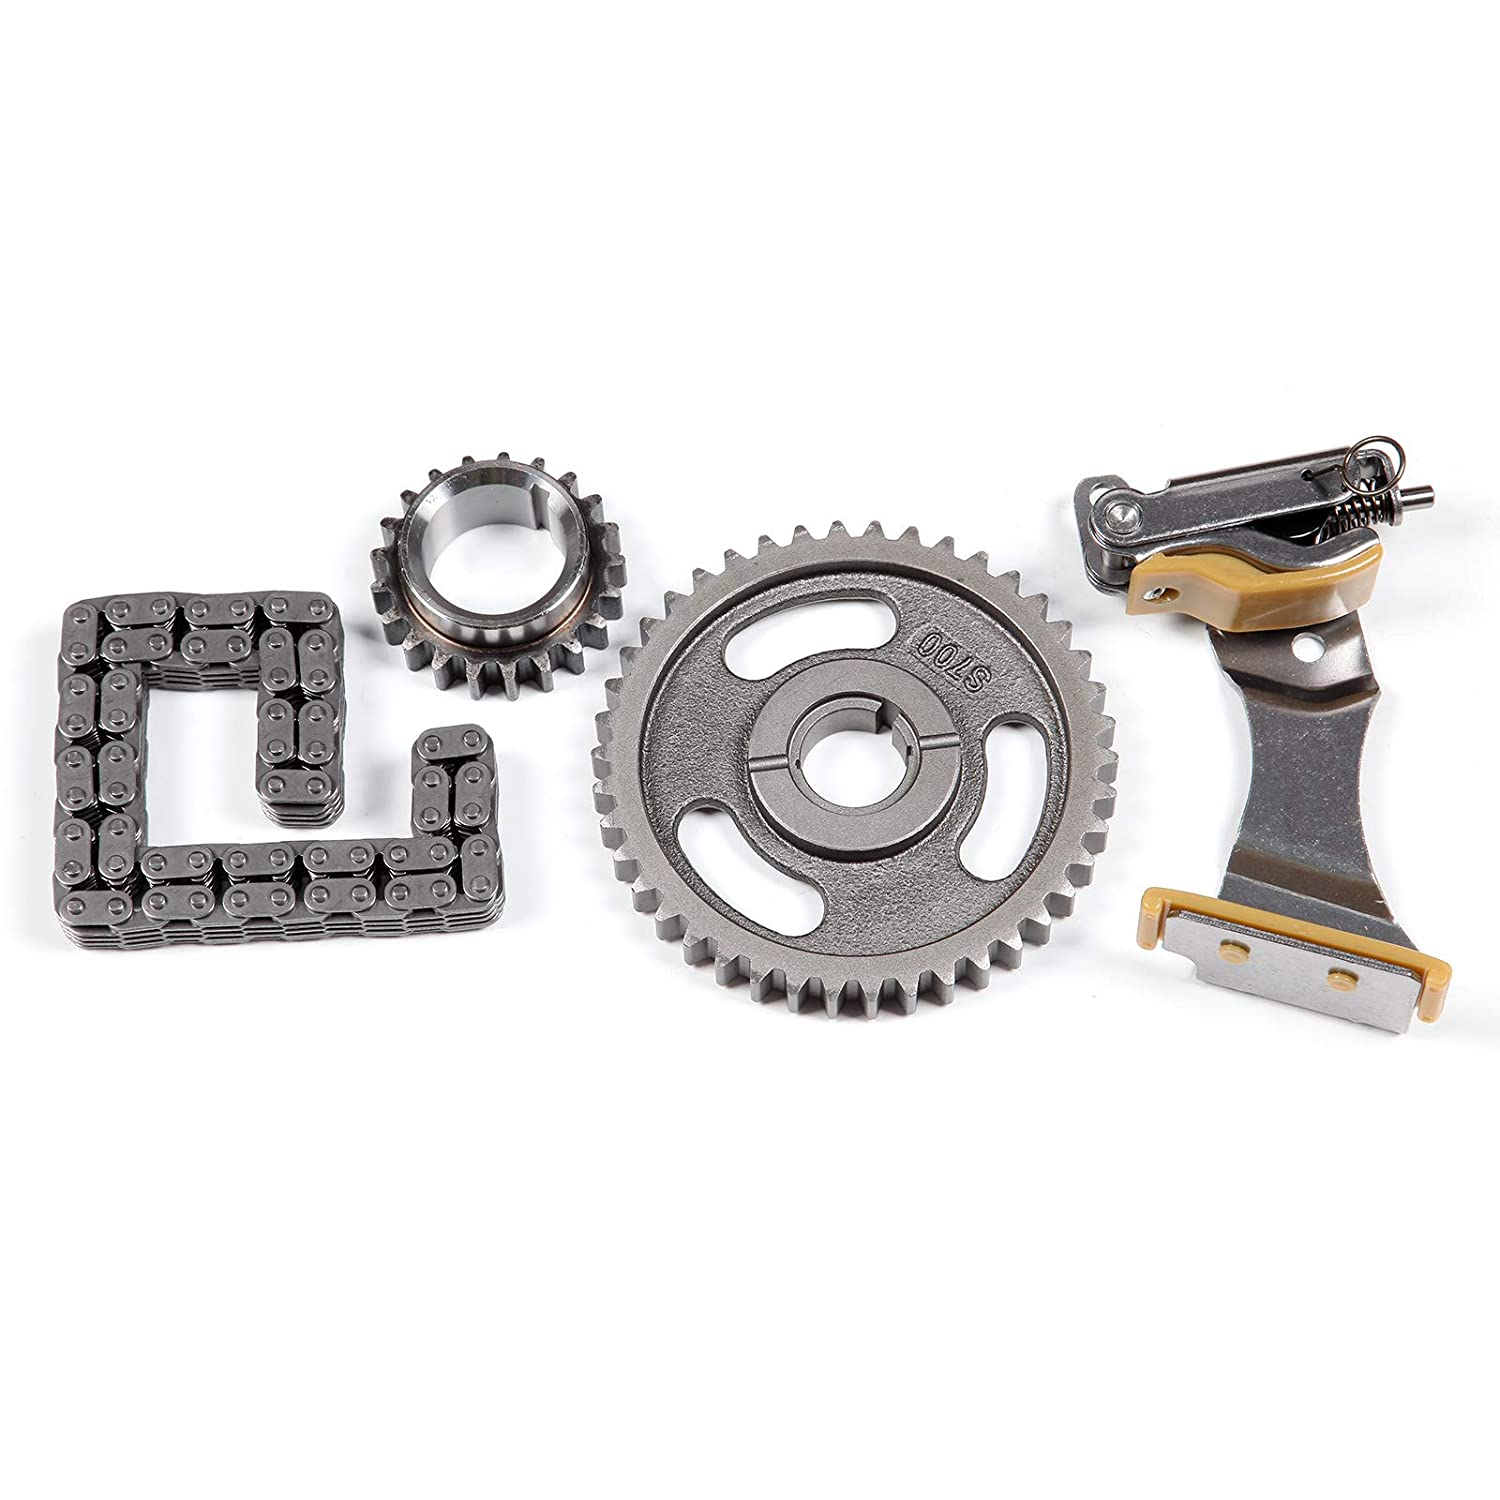 V6 Gas OHV Naturally Aspirated AUTOMUTO Timing Chain Parts fits for 2003 Ford E-150 4.2L 256Cu in